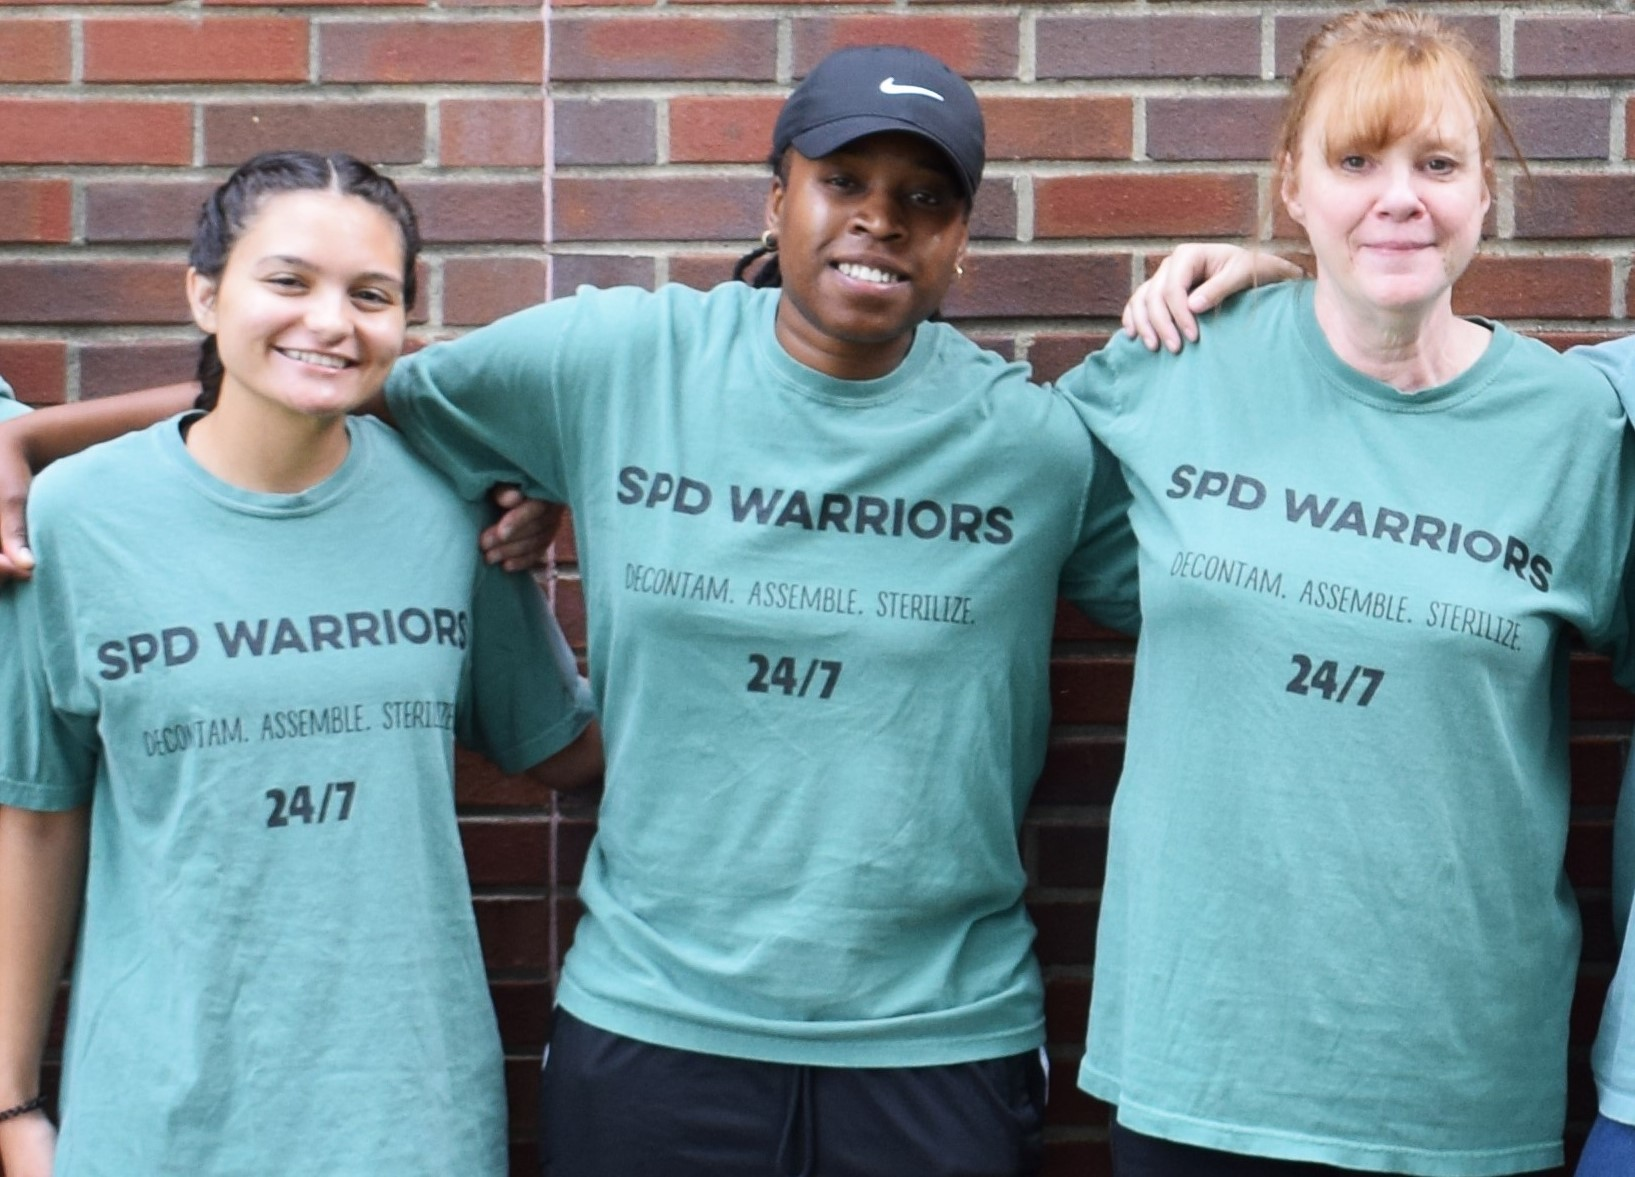 SPD Warriors